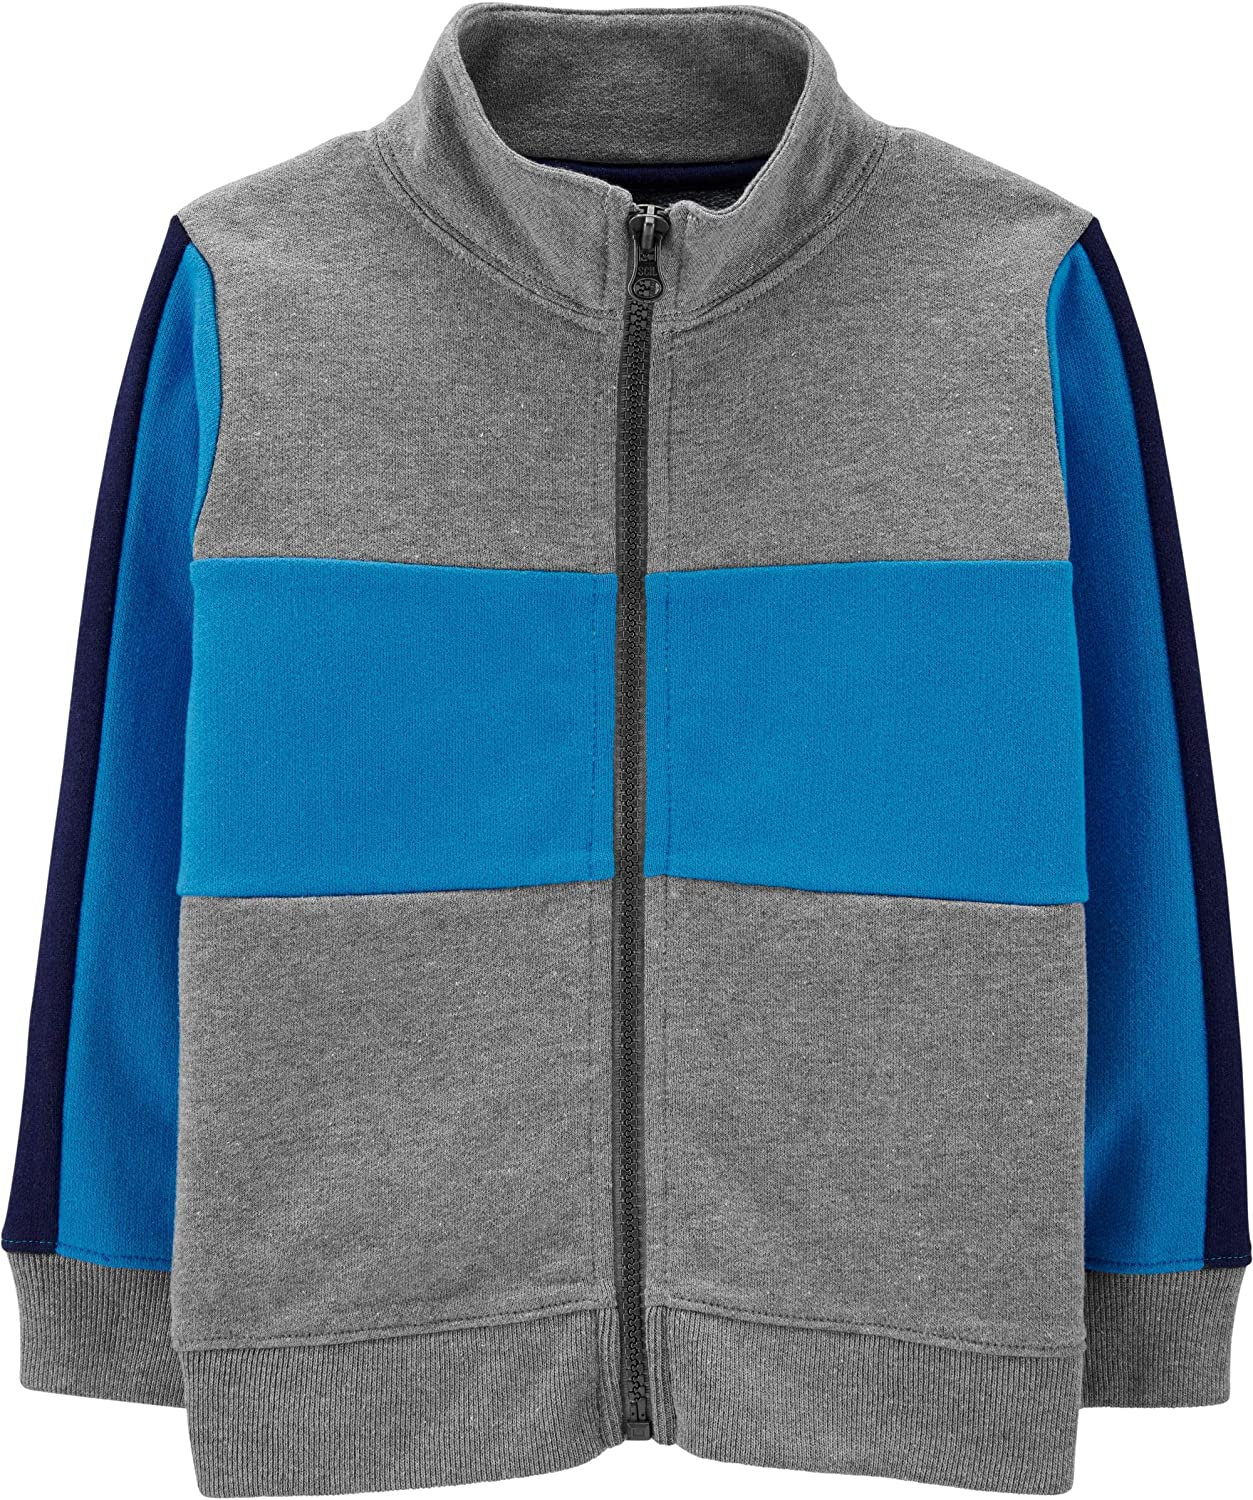 Carter's Baby Boy's Zip Front French Terry Jacket